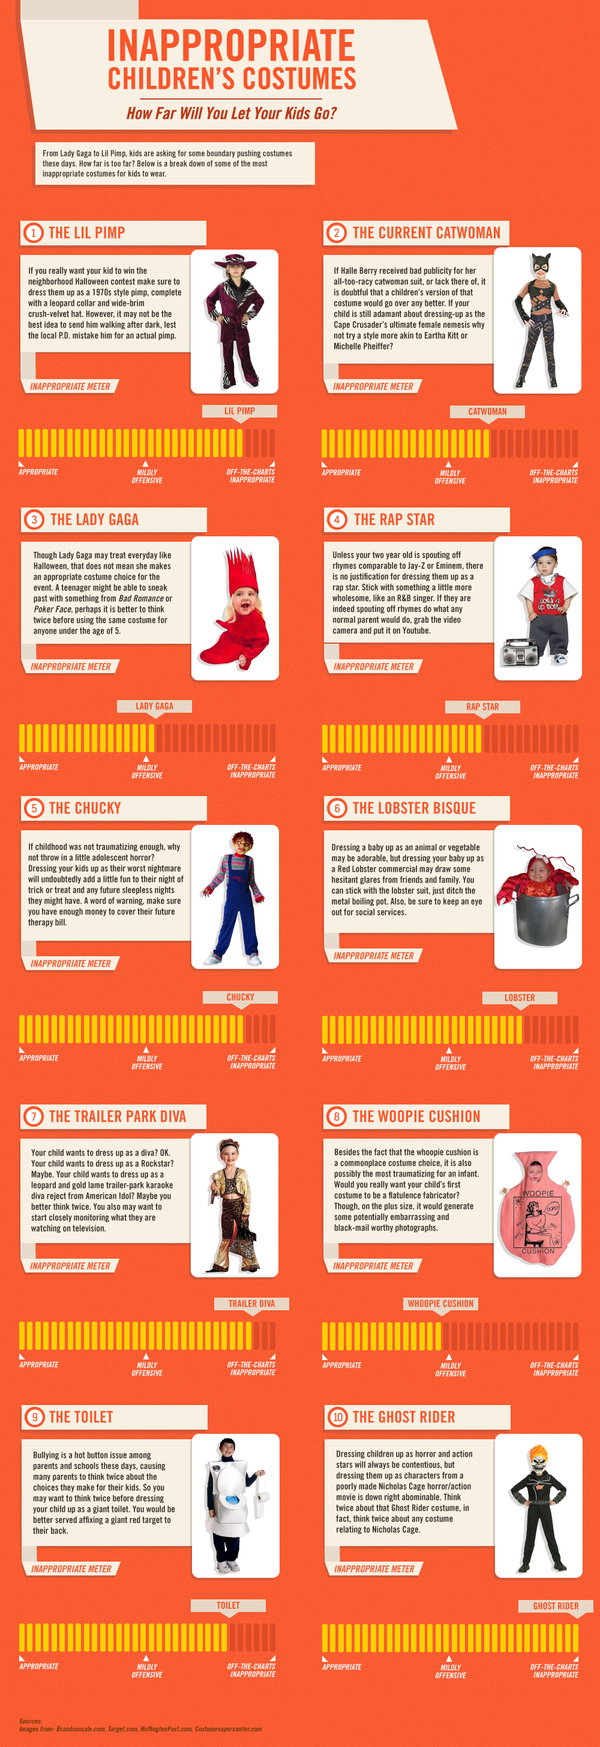 With 6 Months Before Halloween, It's Time for the Most Inappropriate Costumes Infographic